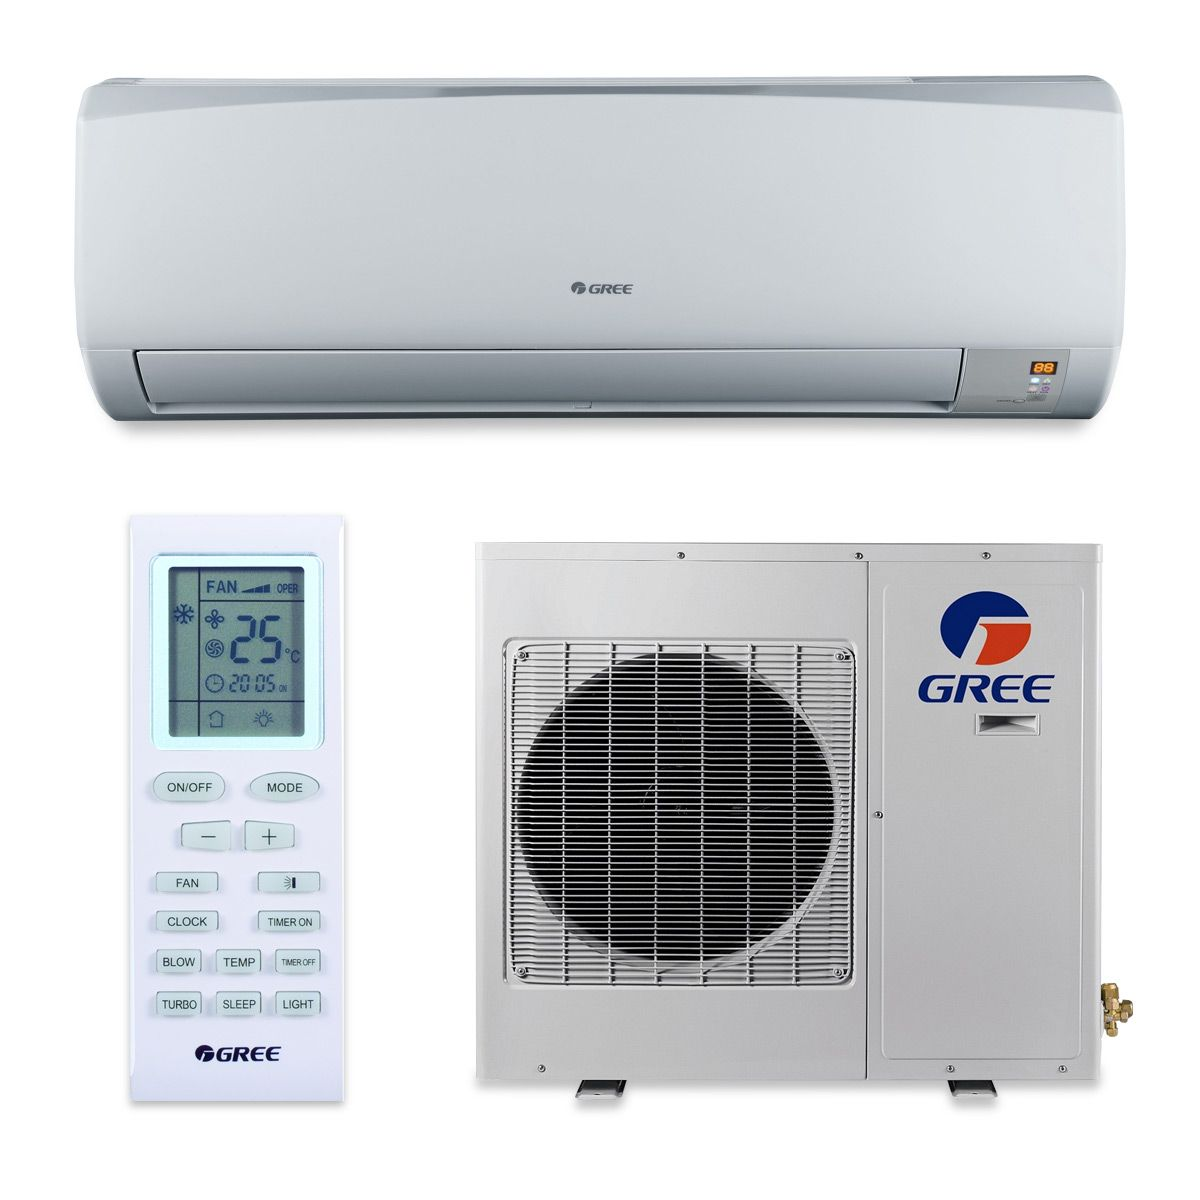 Gree 1 5 Ton Inverter Gs 18ct V Split Air Conditioner